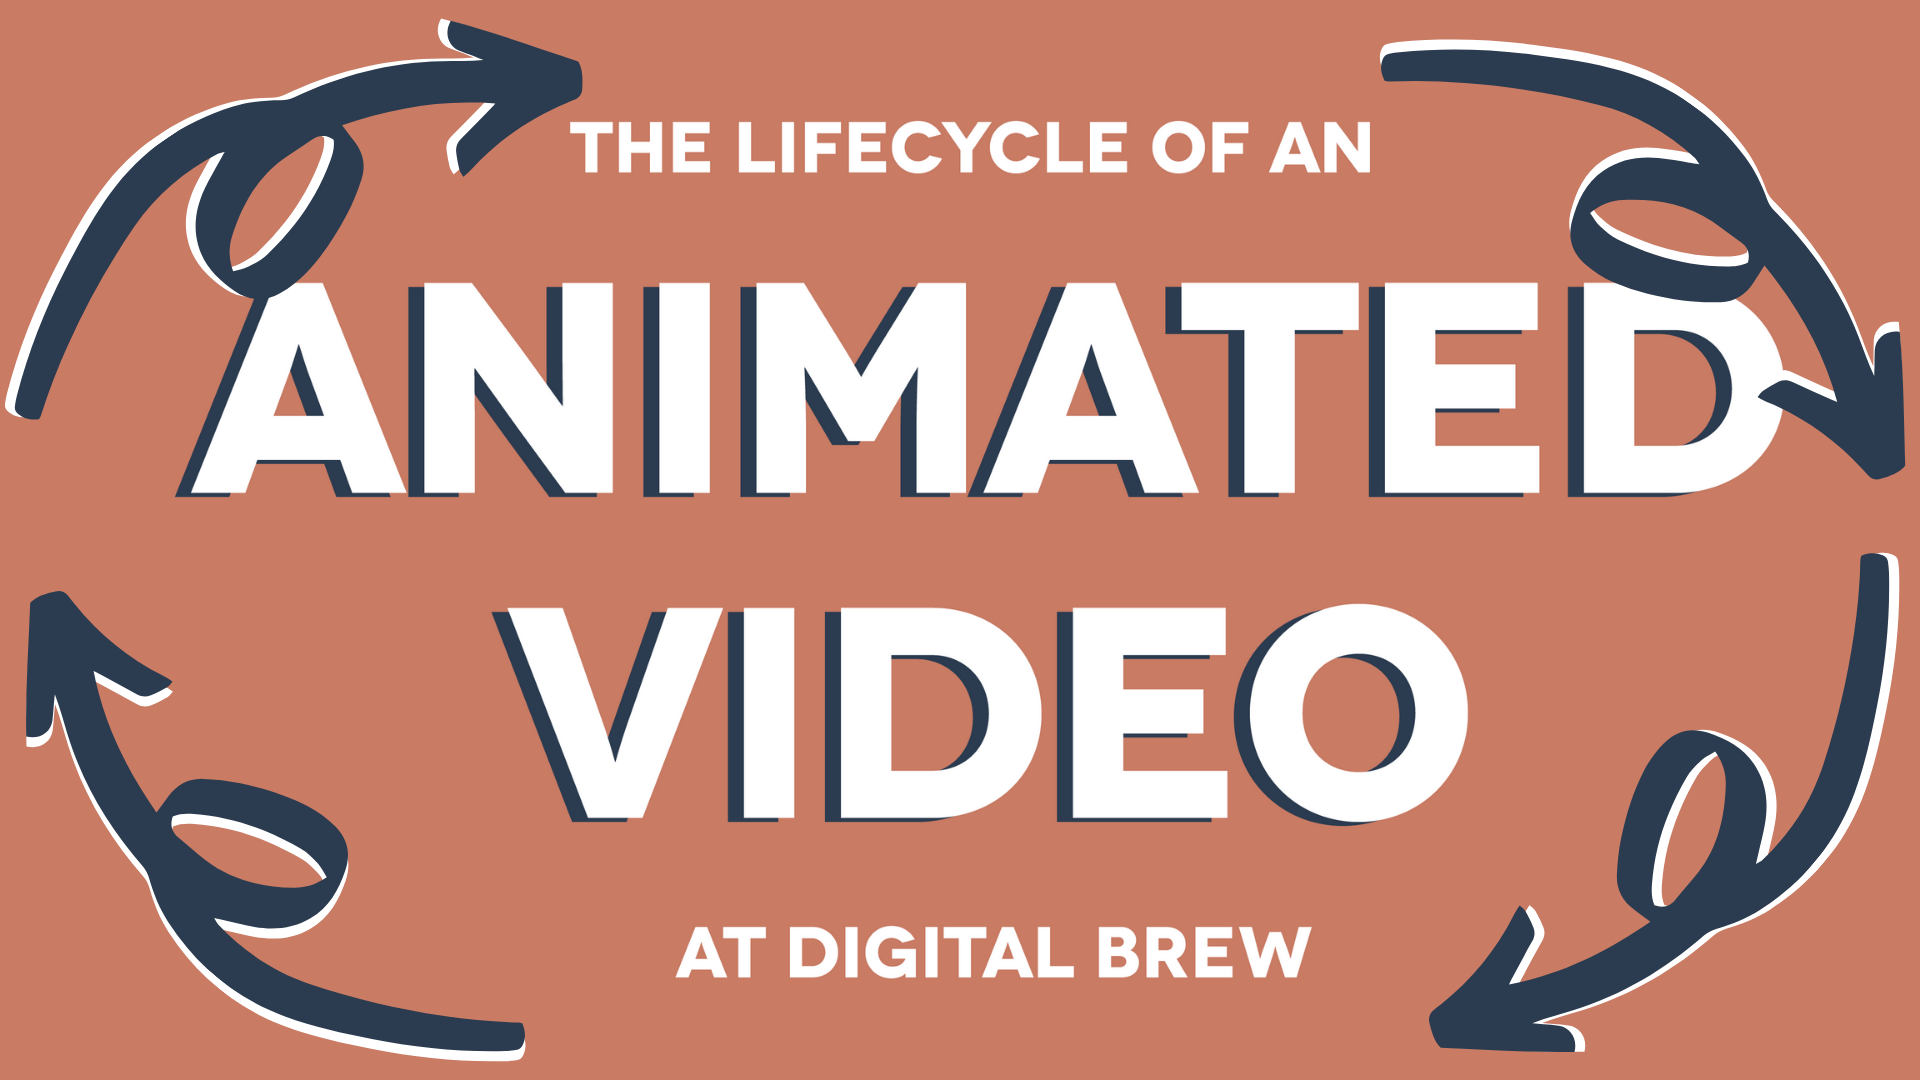 The Lifecycle of an Animated Video